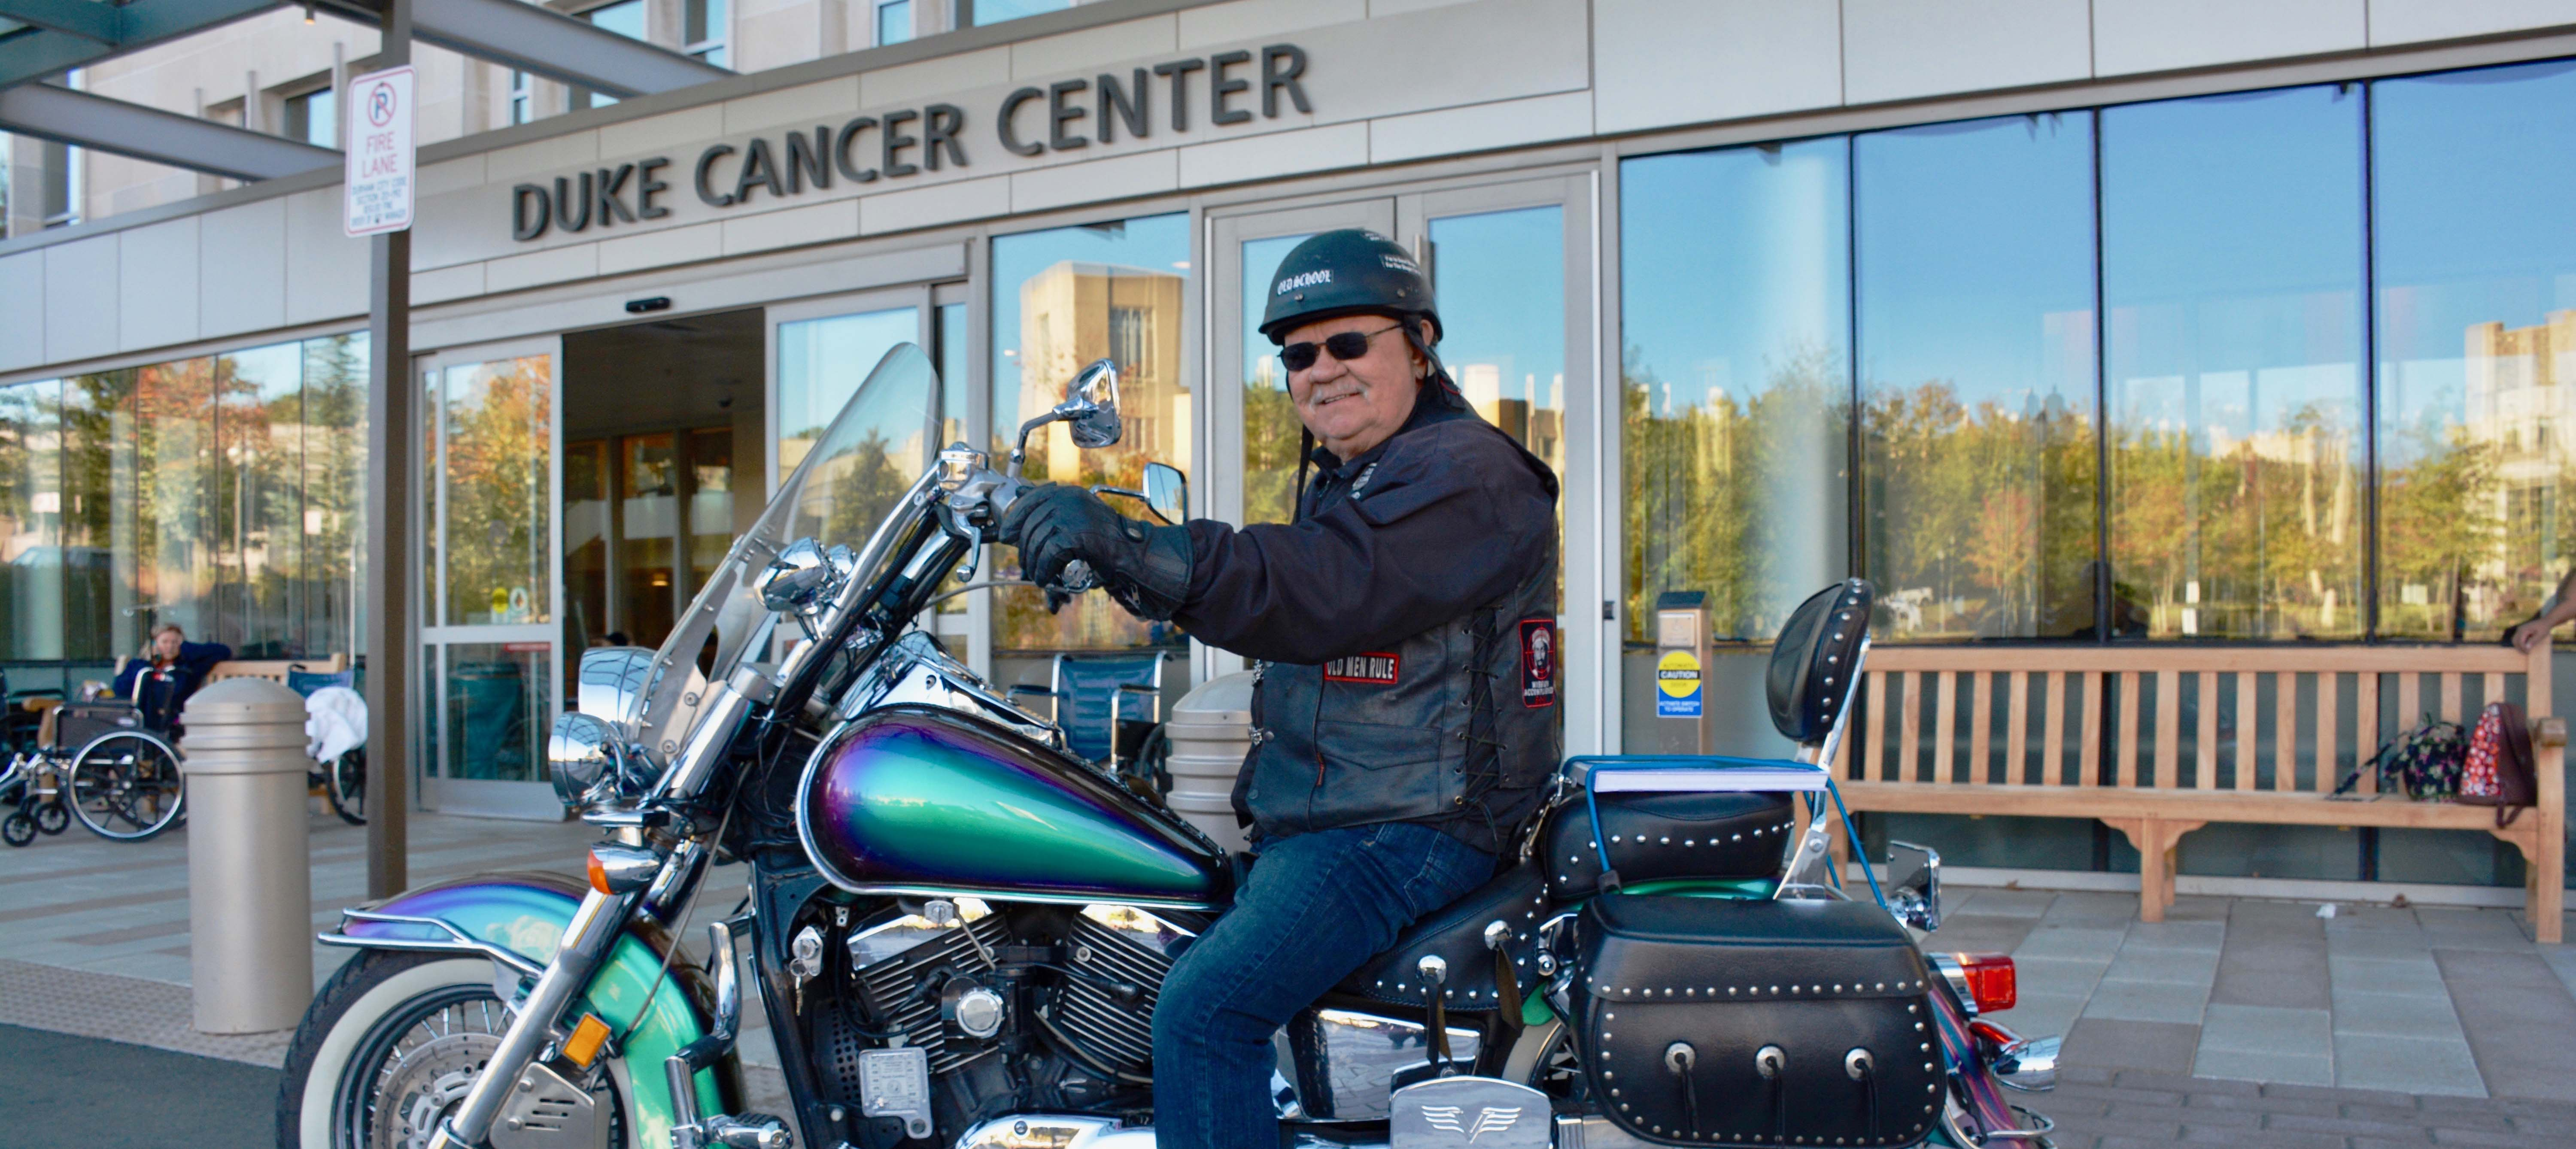 Motorcyclist Ronald Knowles rides again after beating lung cancer